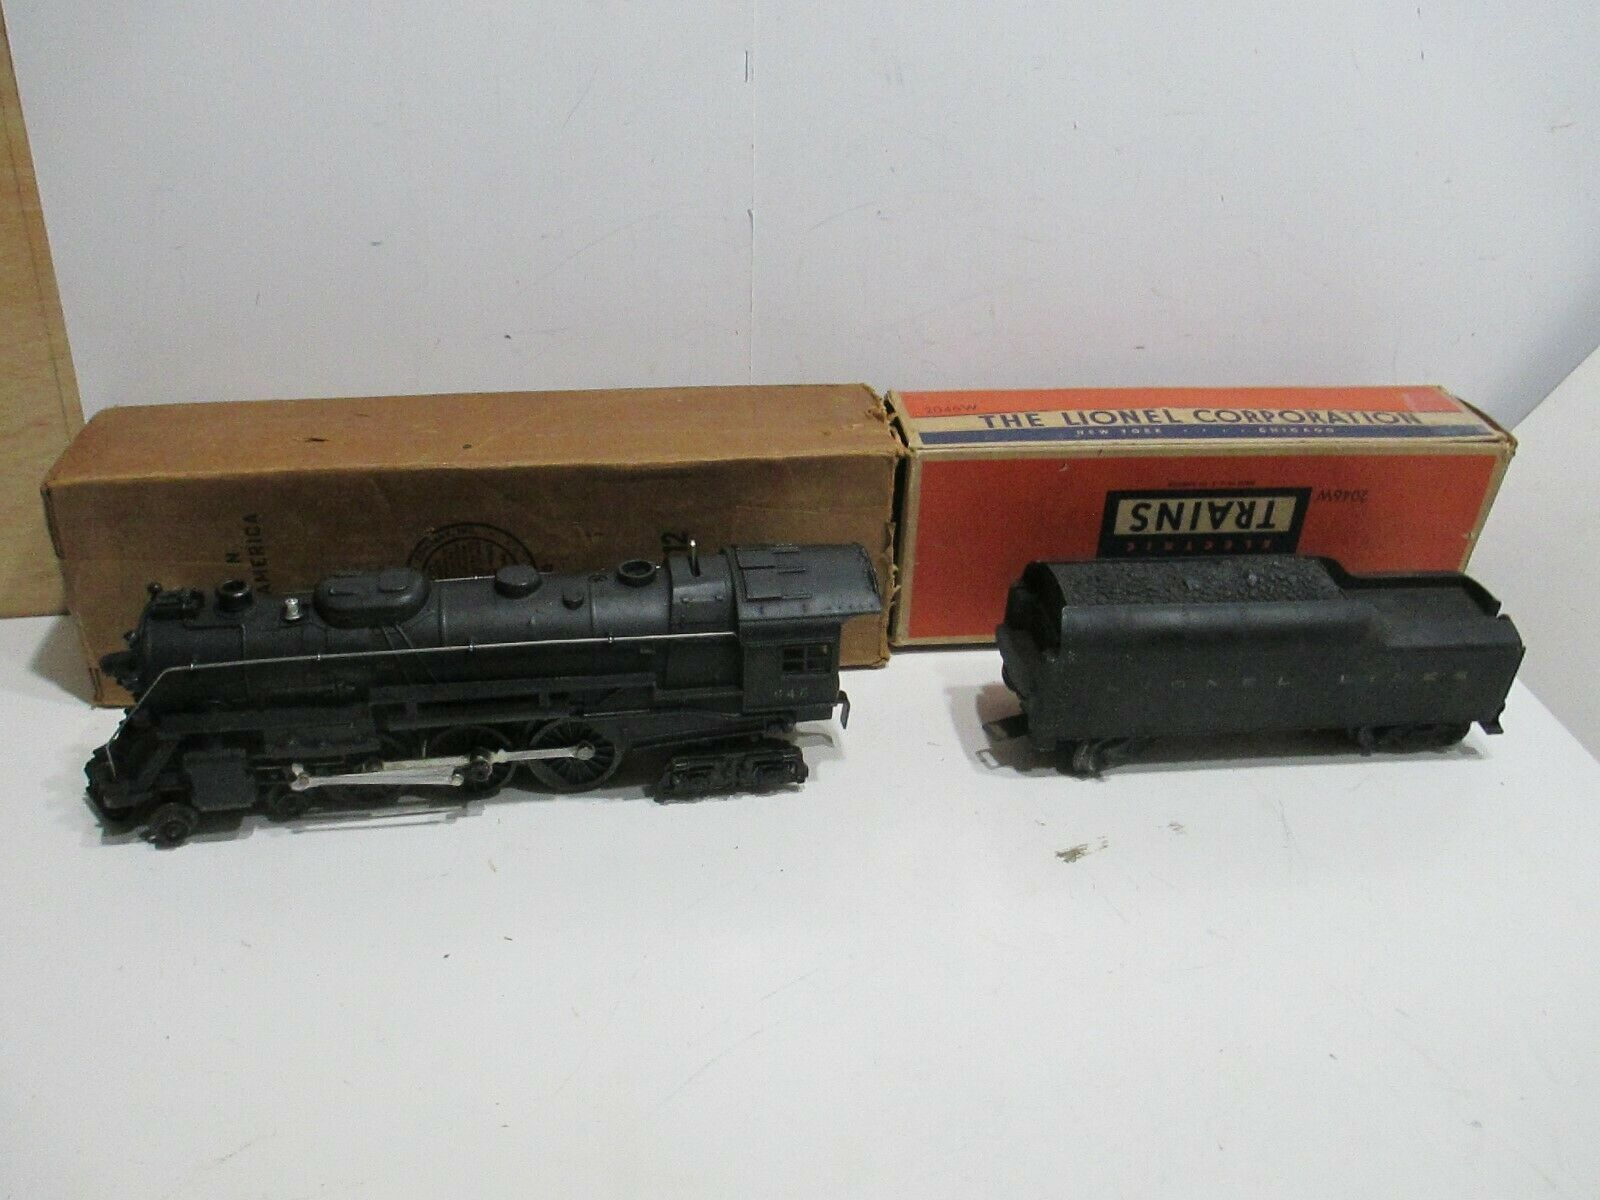 LIONEL POSTWAR 646 & 2046W steam engine & tender with boxes  VG cond-tested runs